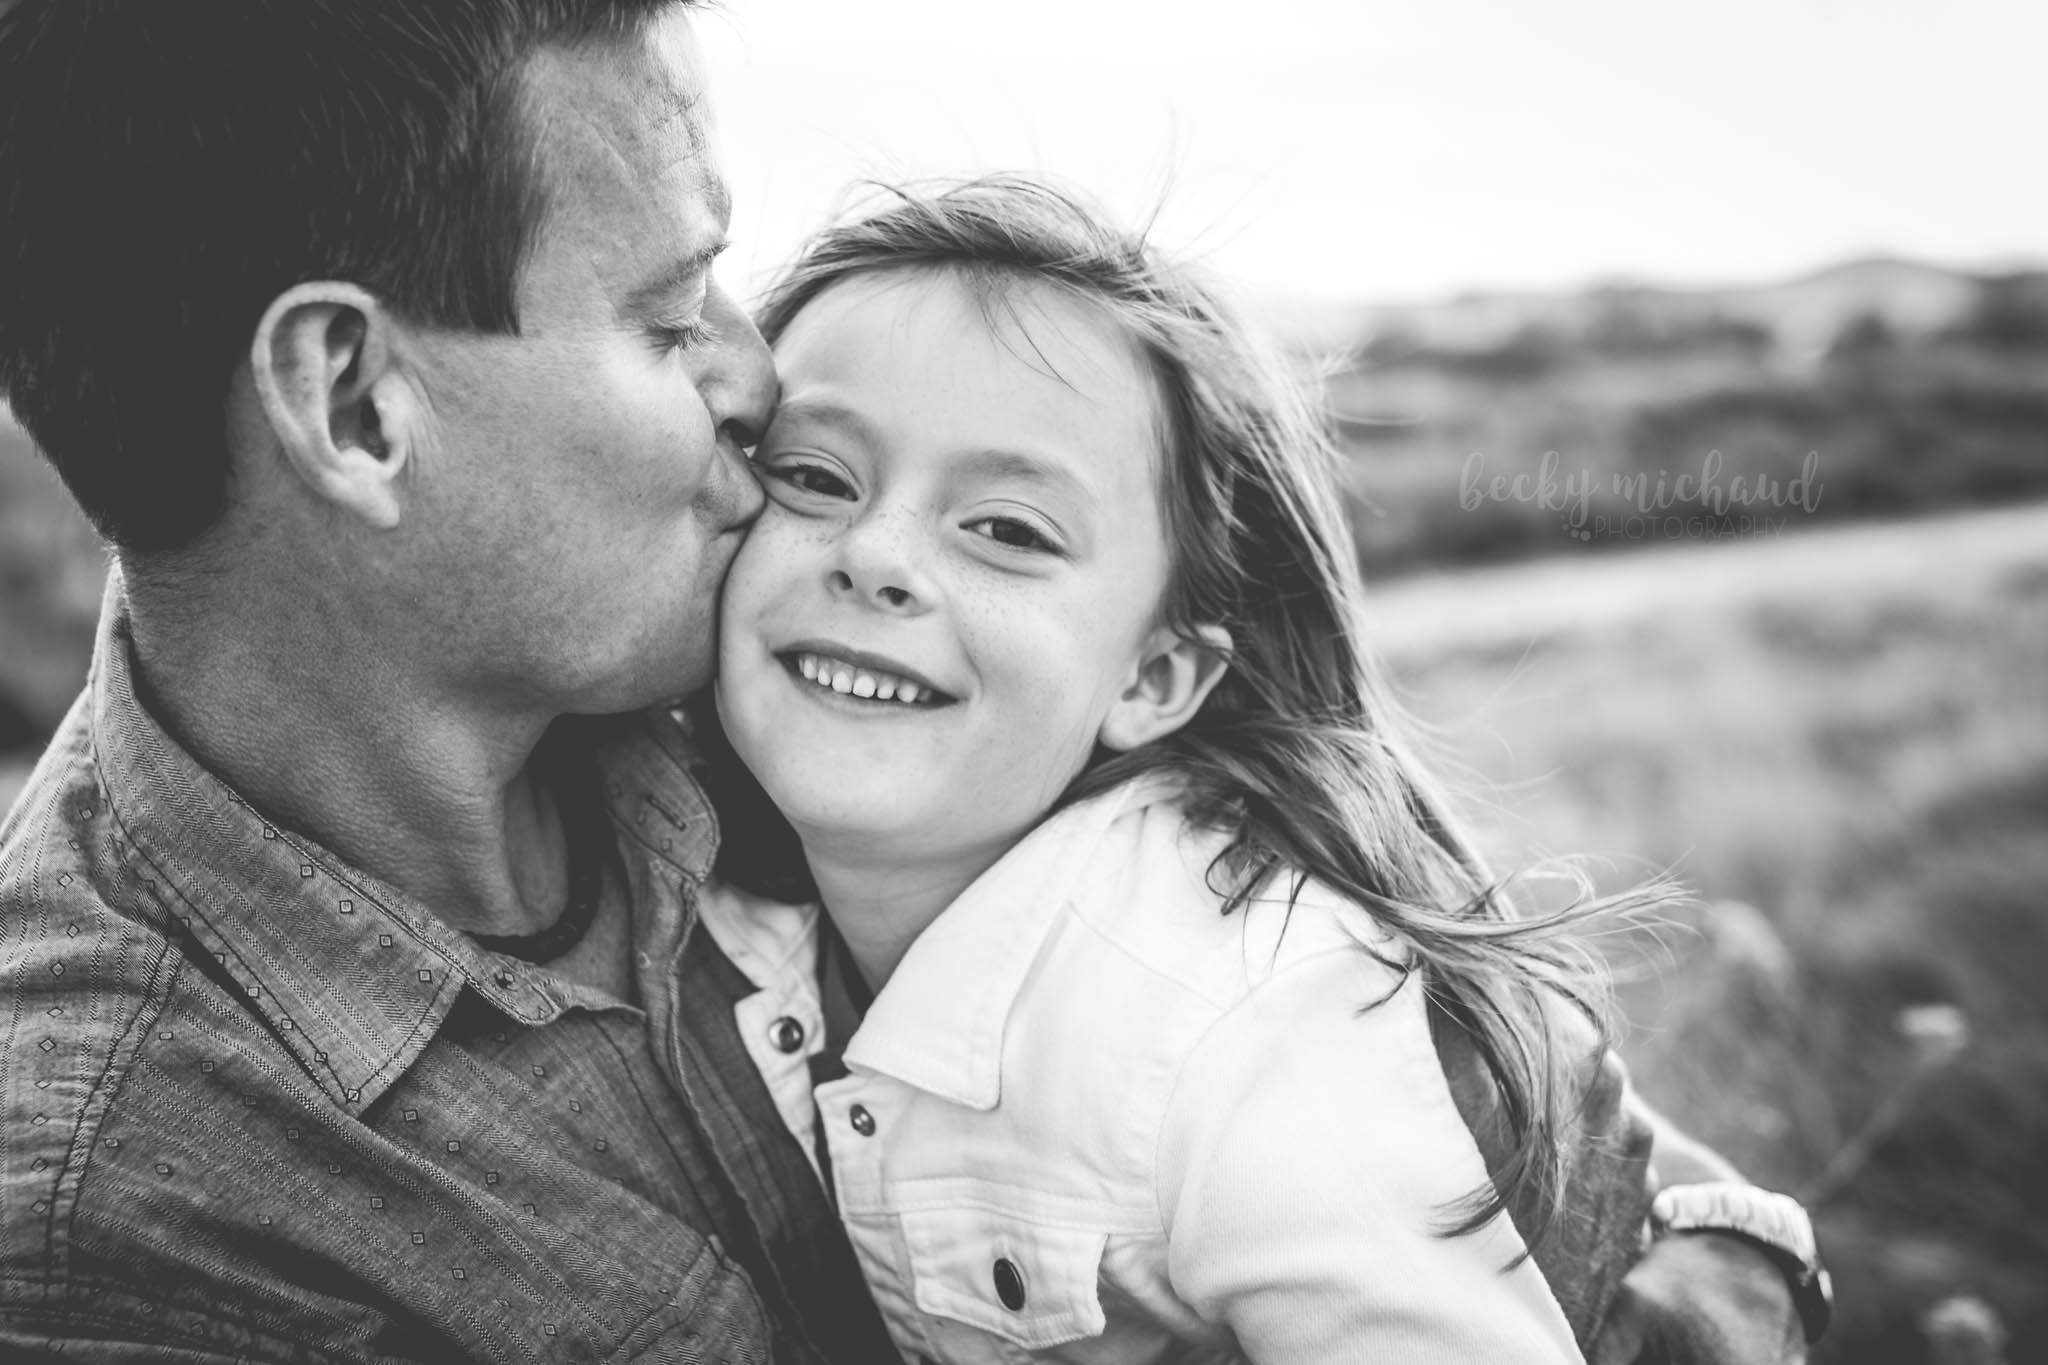 black and white photo of a dad kissing his daughter taken by Becky Michaud, Northern Colorado photographer